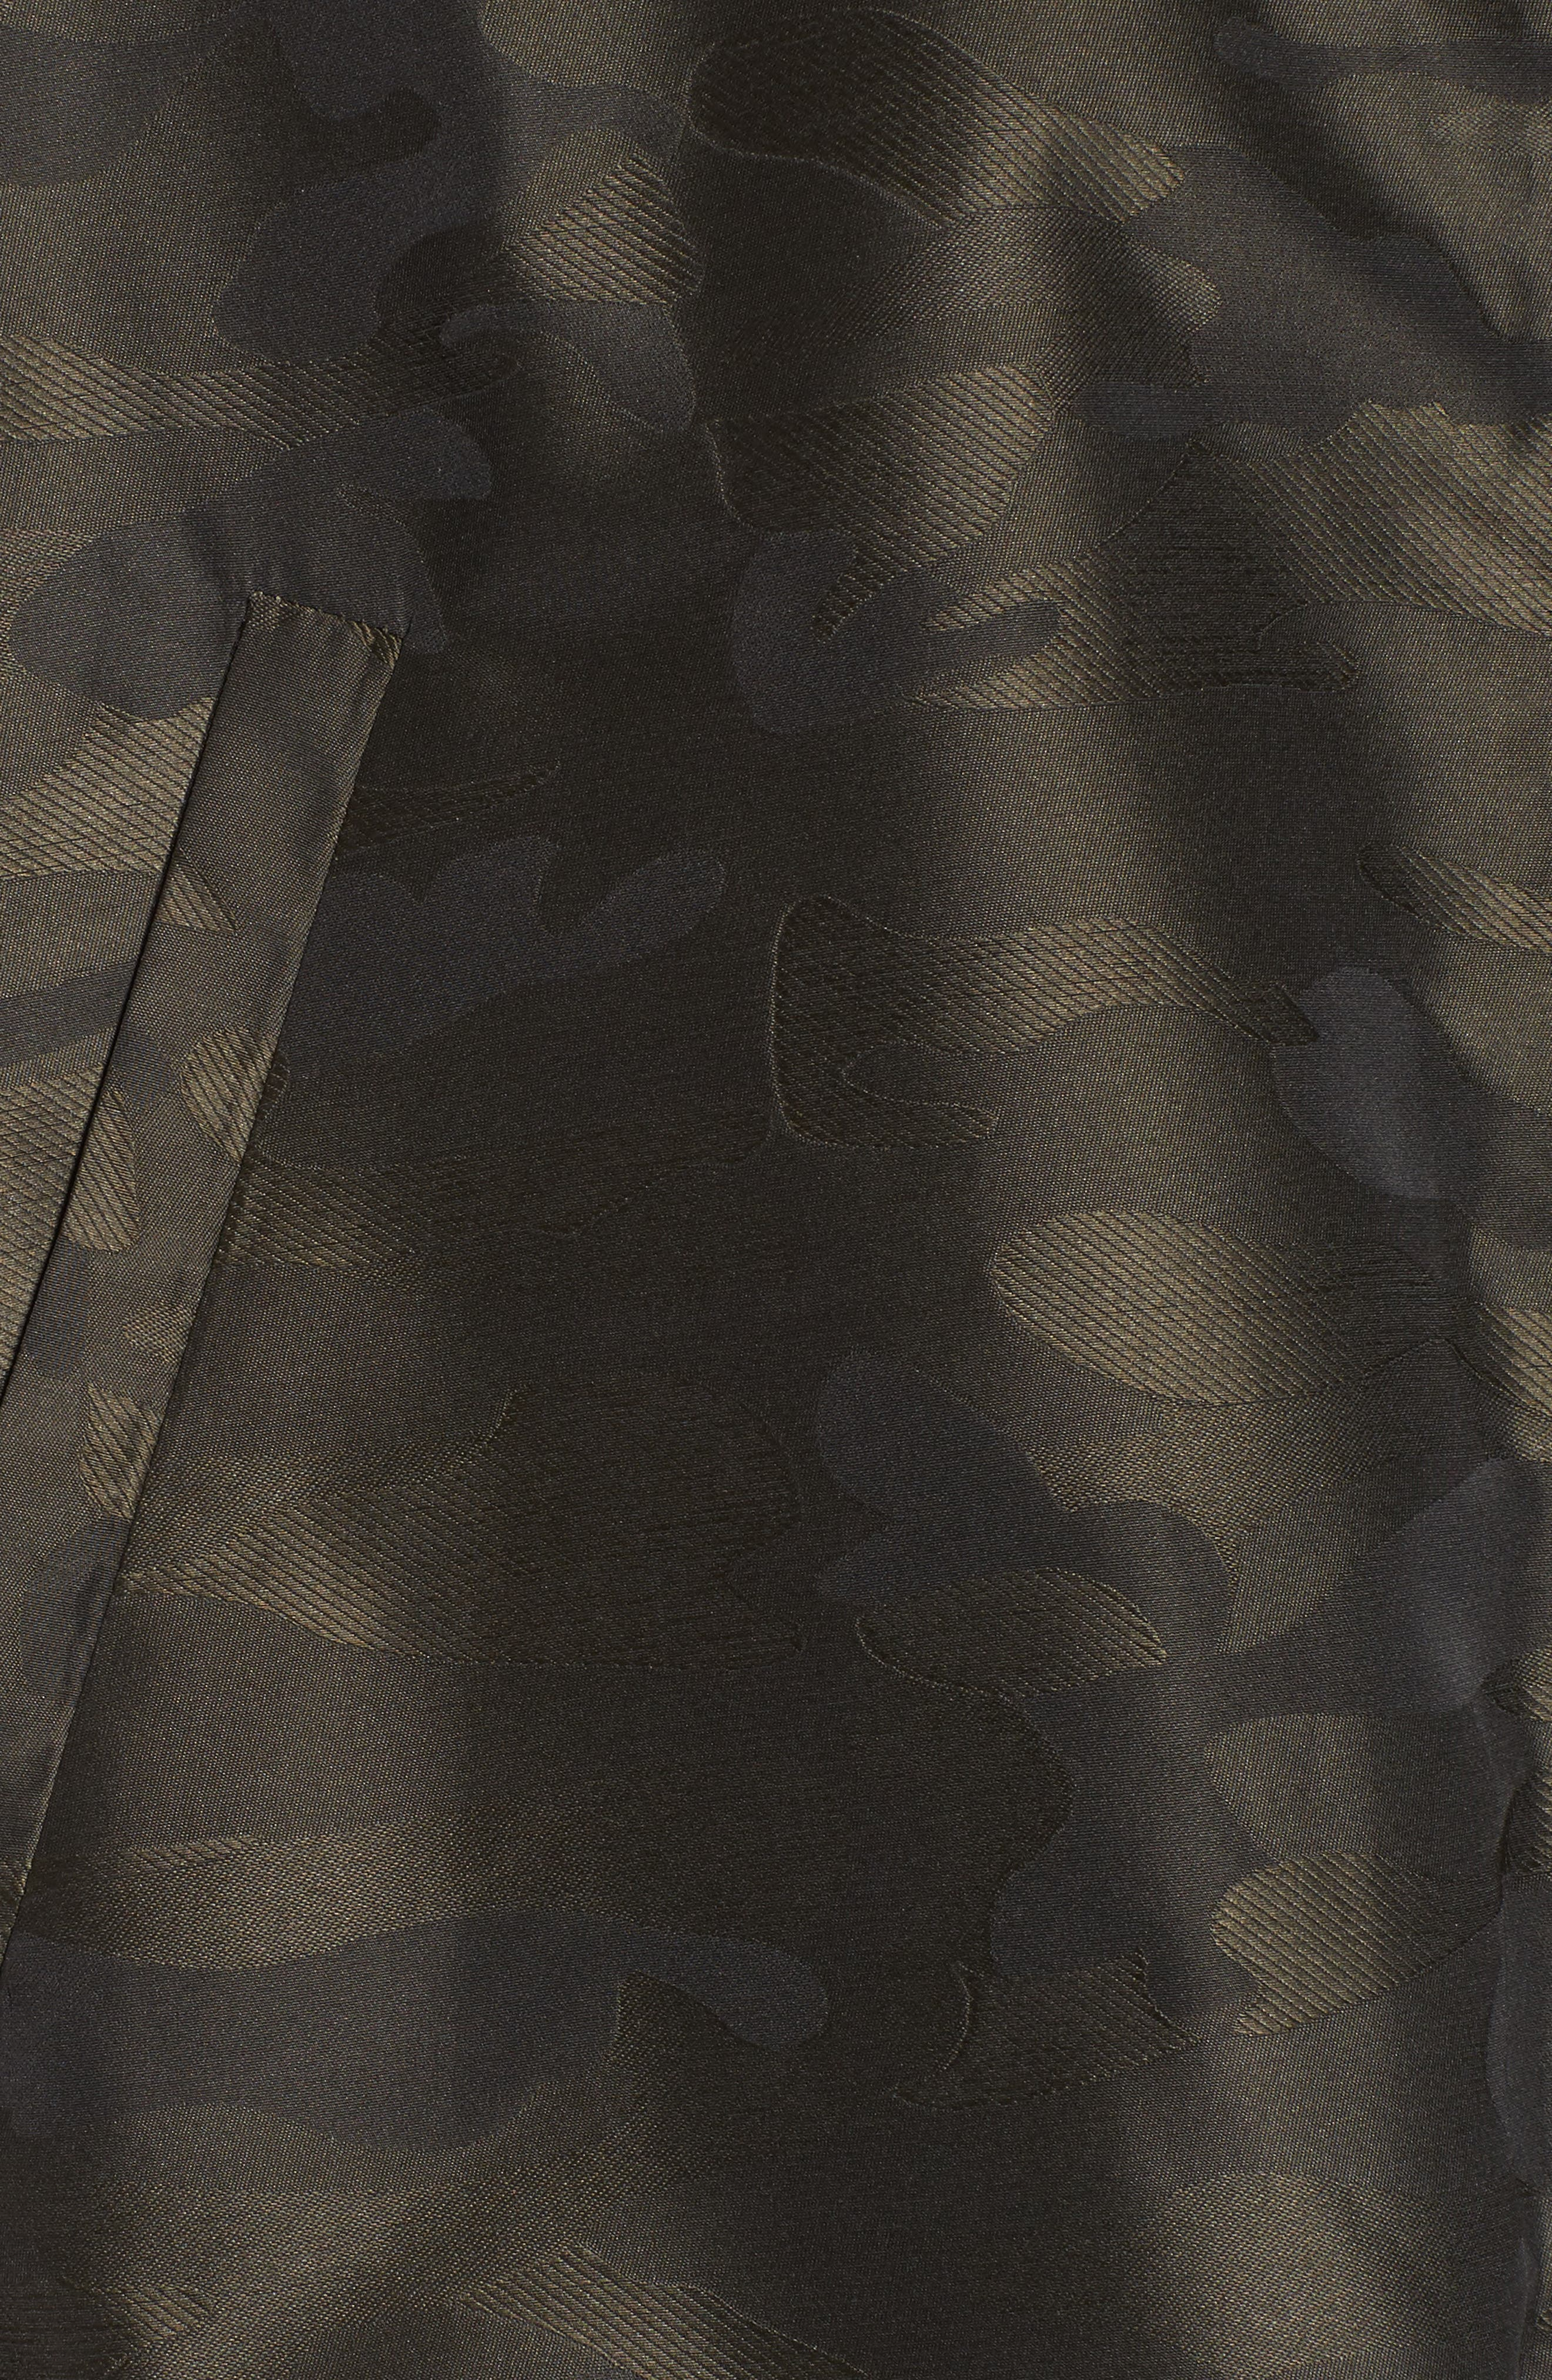 Camo We Not Bell Sleeve Jacket,                             Alternate thumbnail 5, color,                             Olive Camo